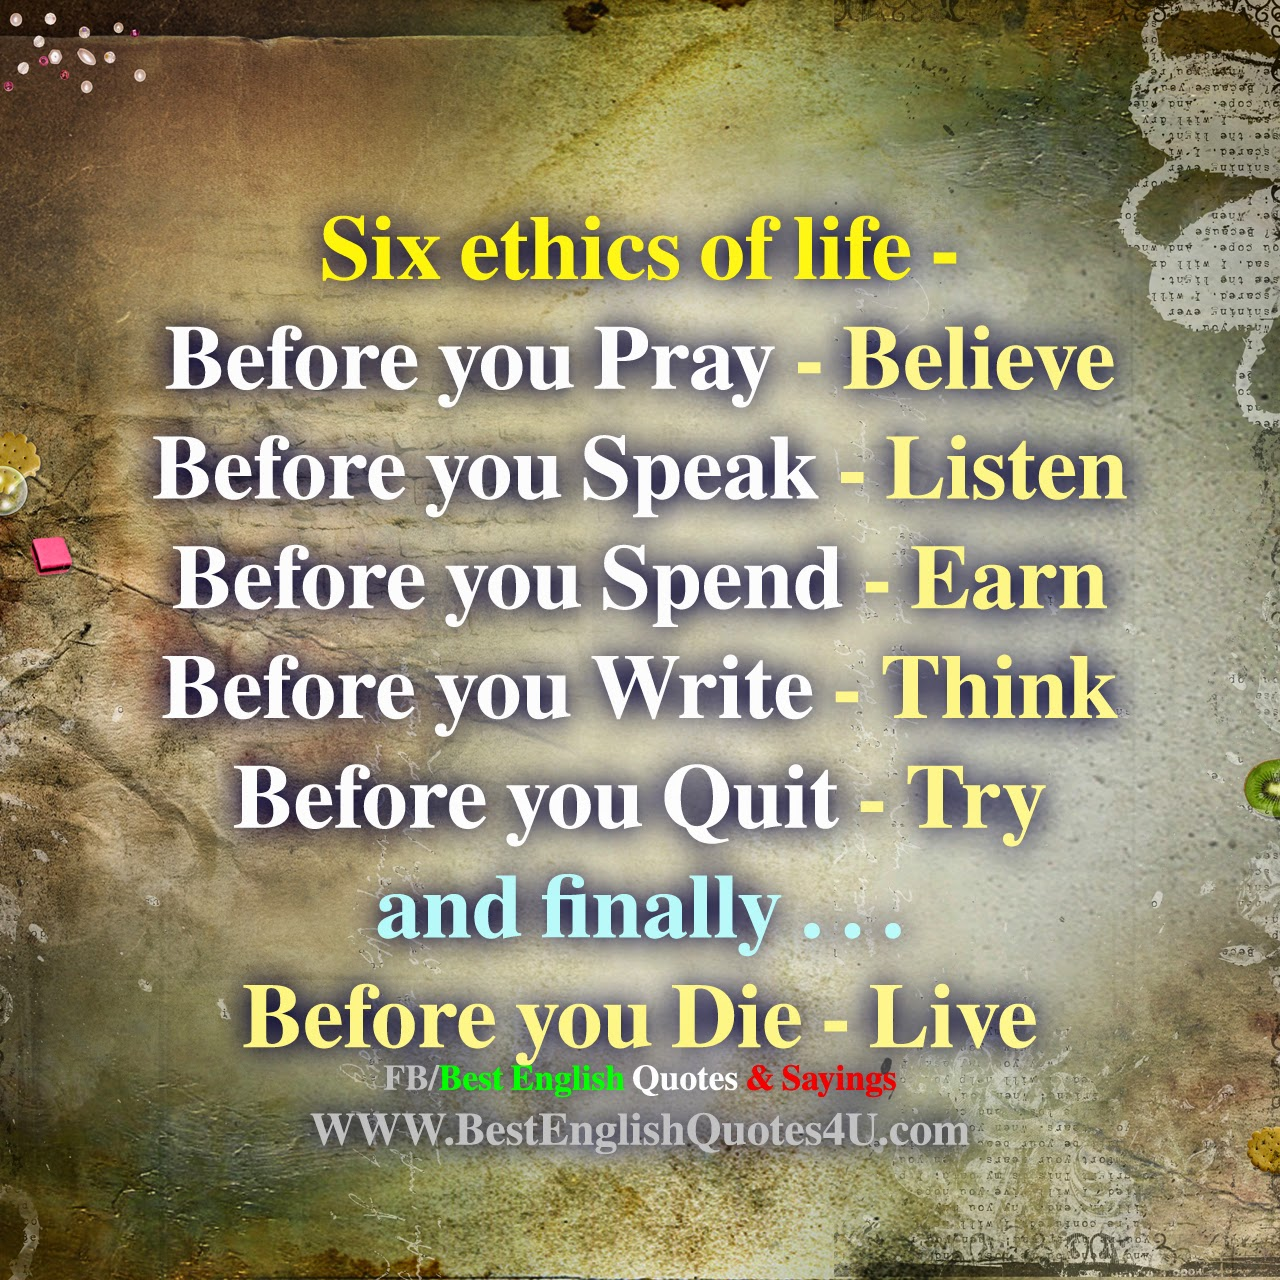 six ethics of life best english quotes sayings